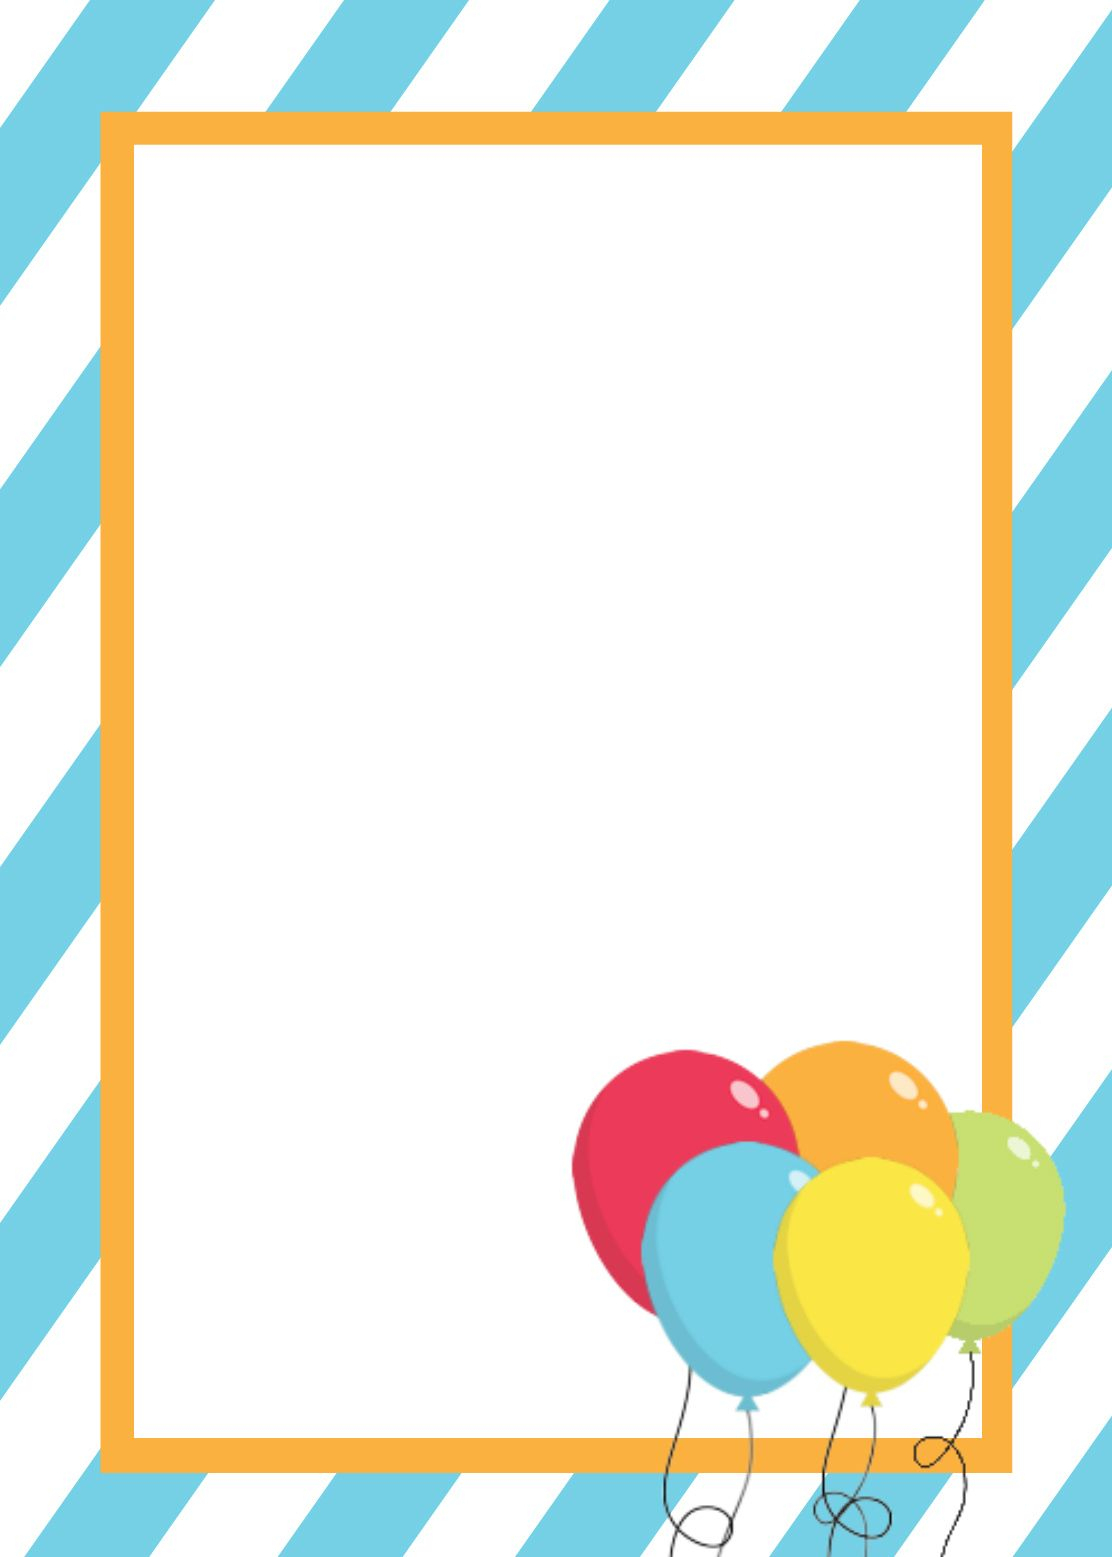 Free Printable Birthday Invitation Templates | Birthday Ideas And - Free Printable Birthday Invitations